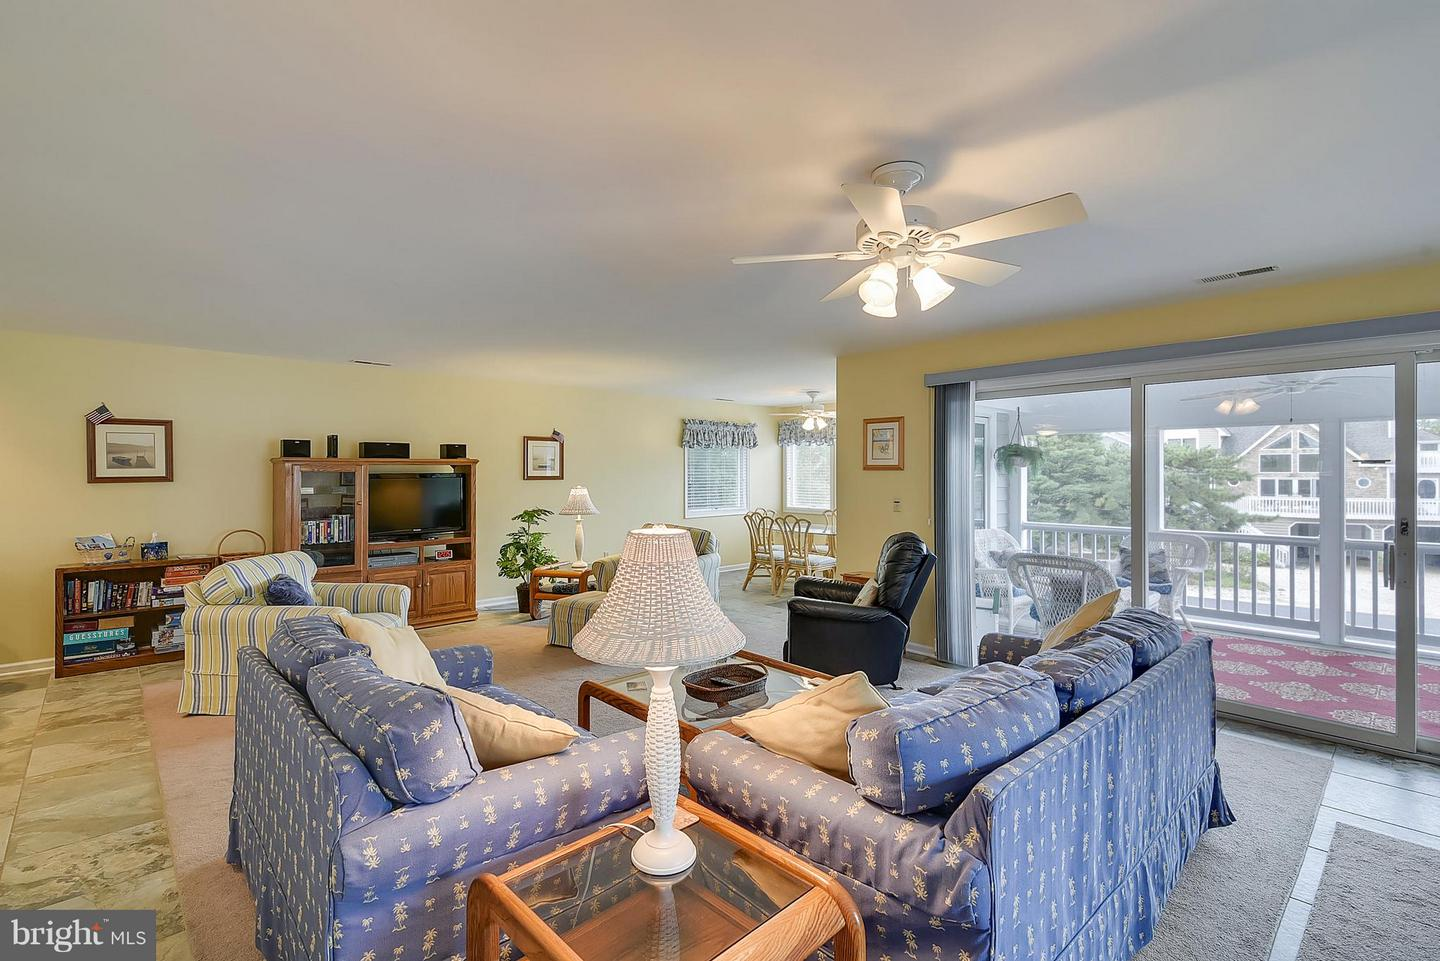 1002344128-300986983855-2018-11-07-14-16-58 39634 Seatrout Cir | North Bethany, DE Real Estate For Sale | MLS# 1002344128  - 1st Choice Properties